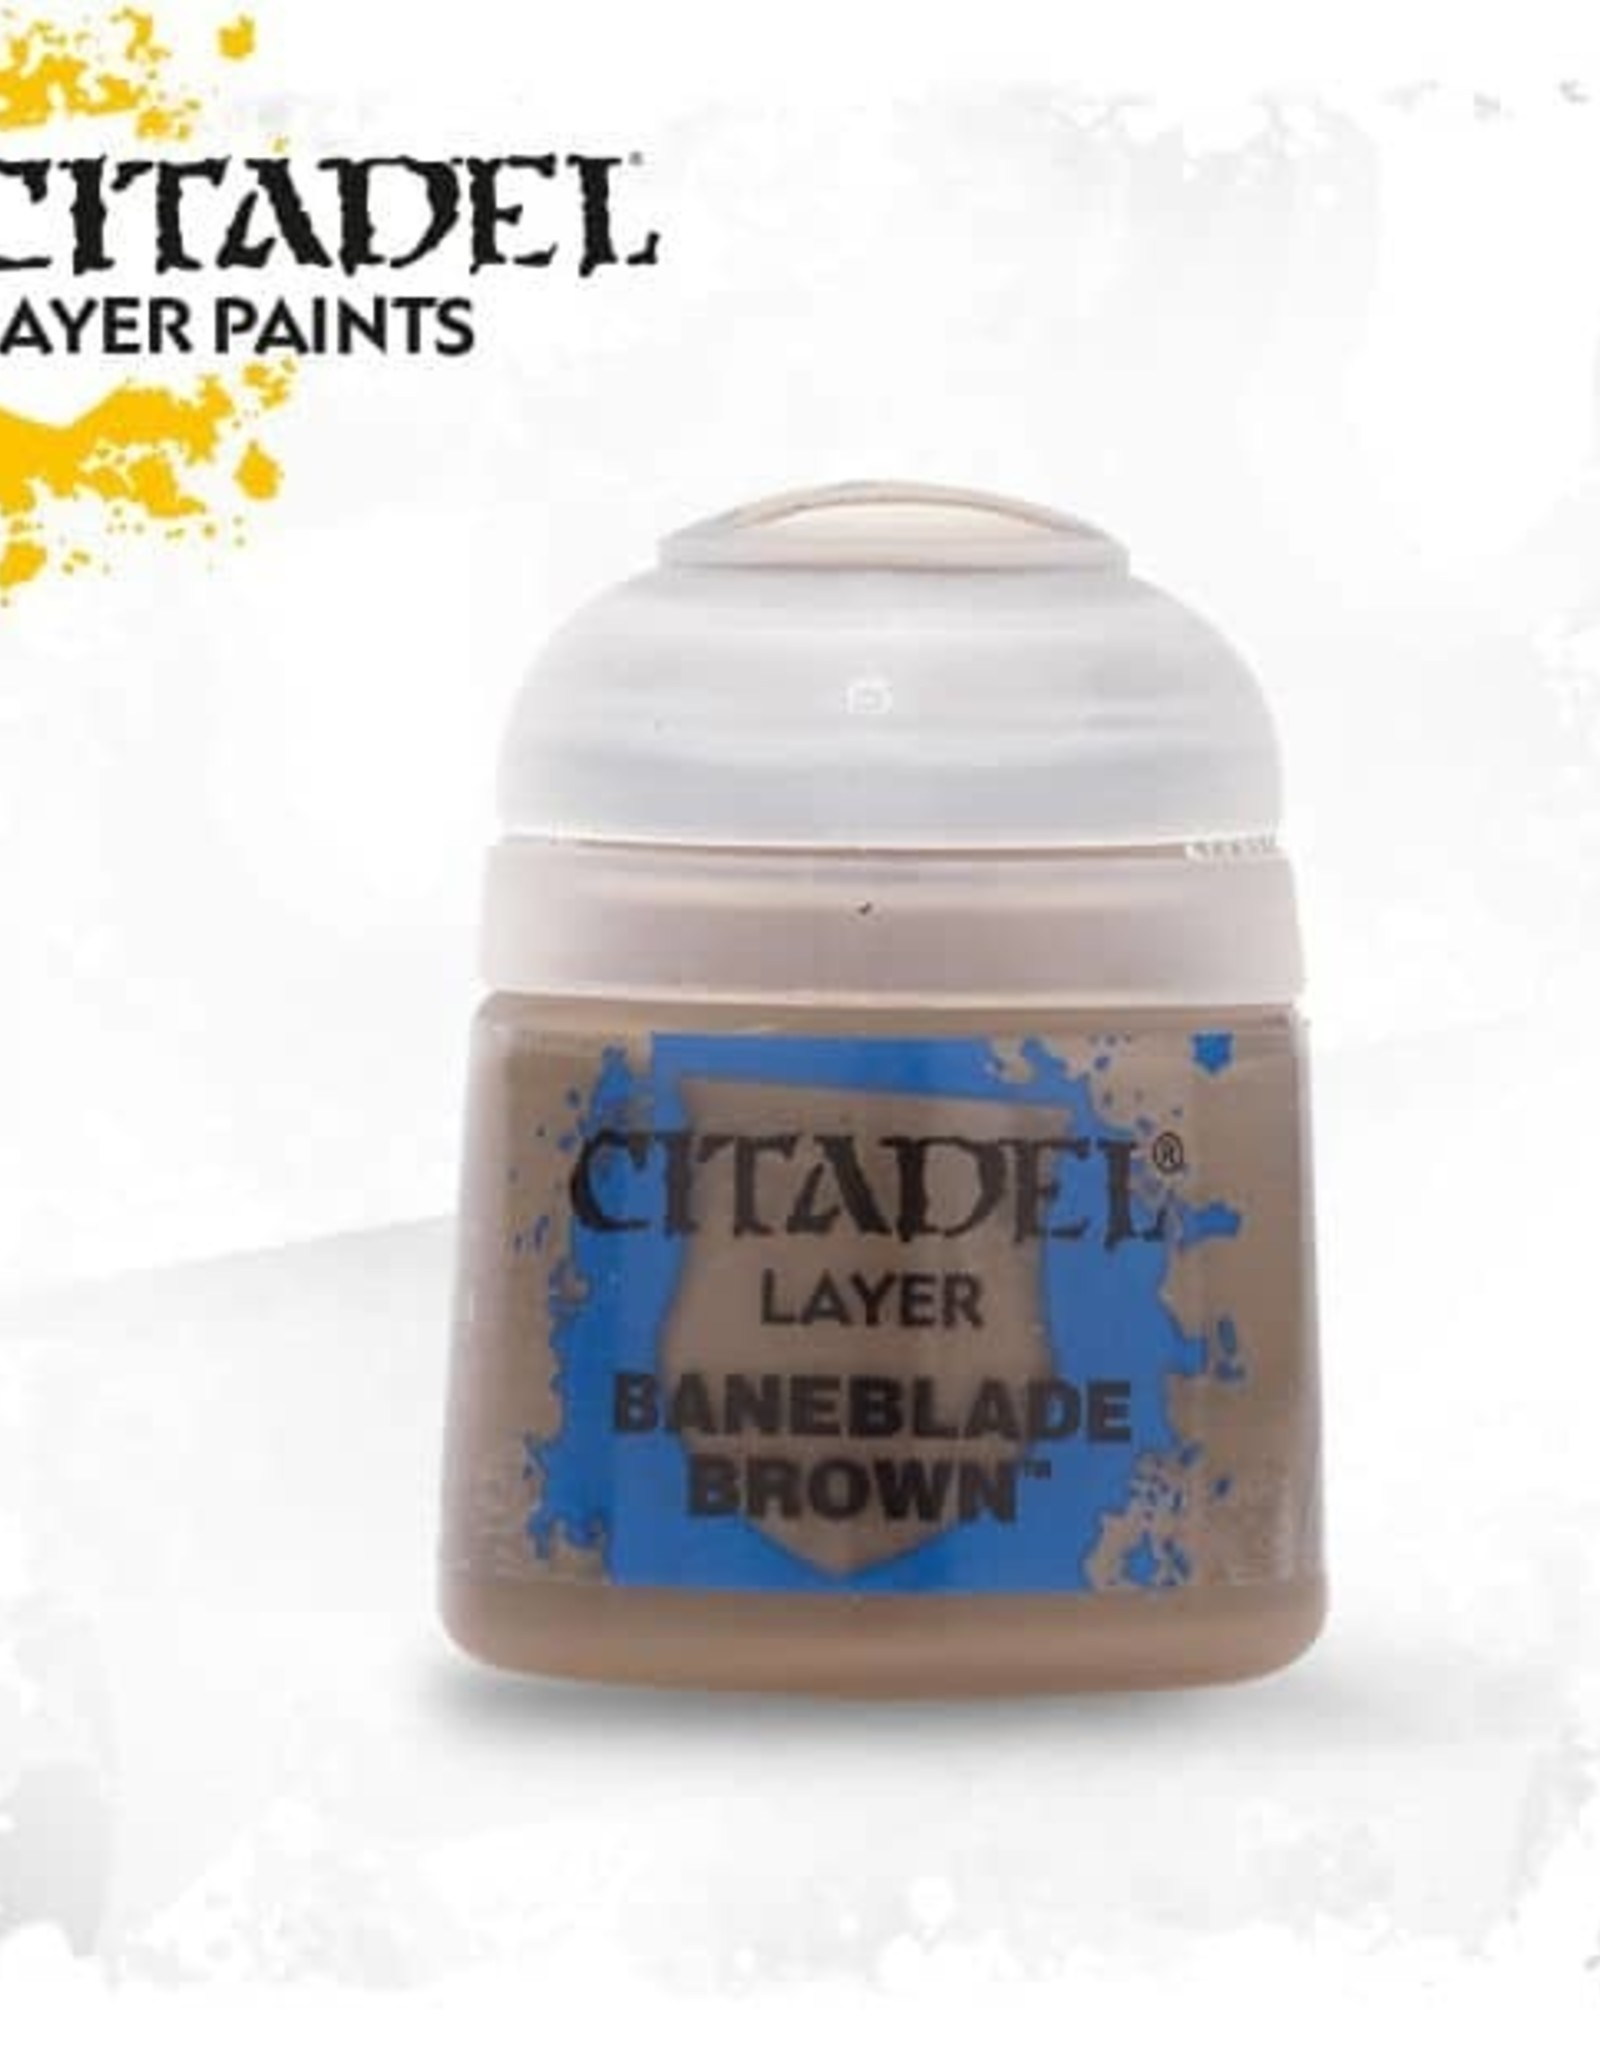 Games Workshop Citadel Paint: Layer - Baneblade Brown